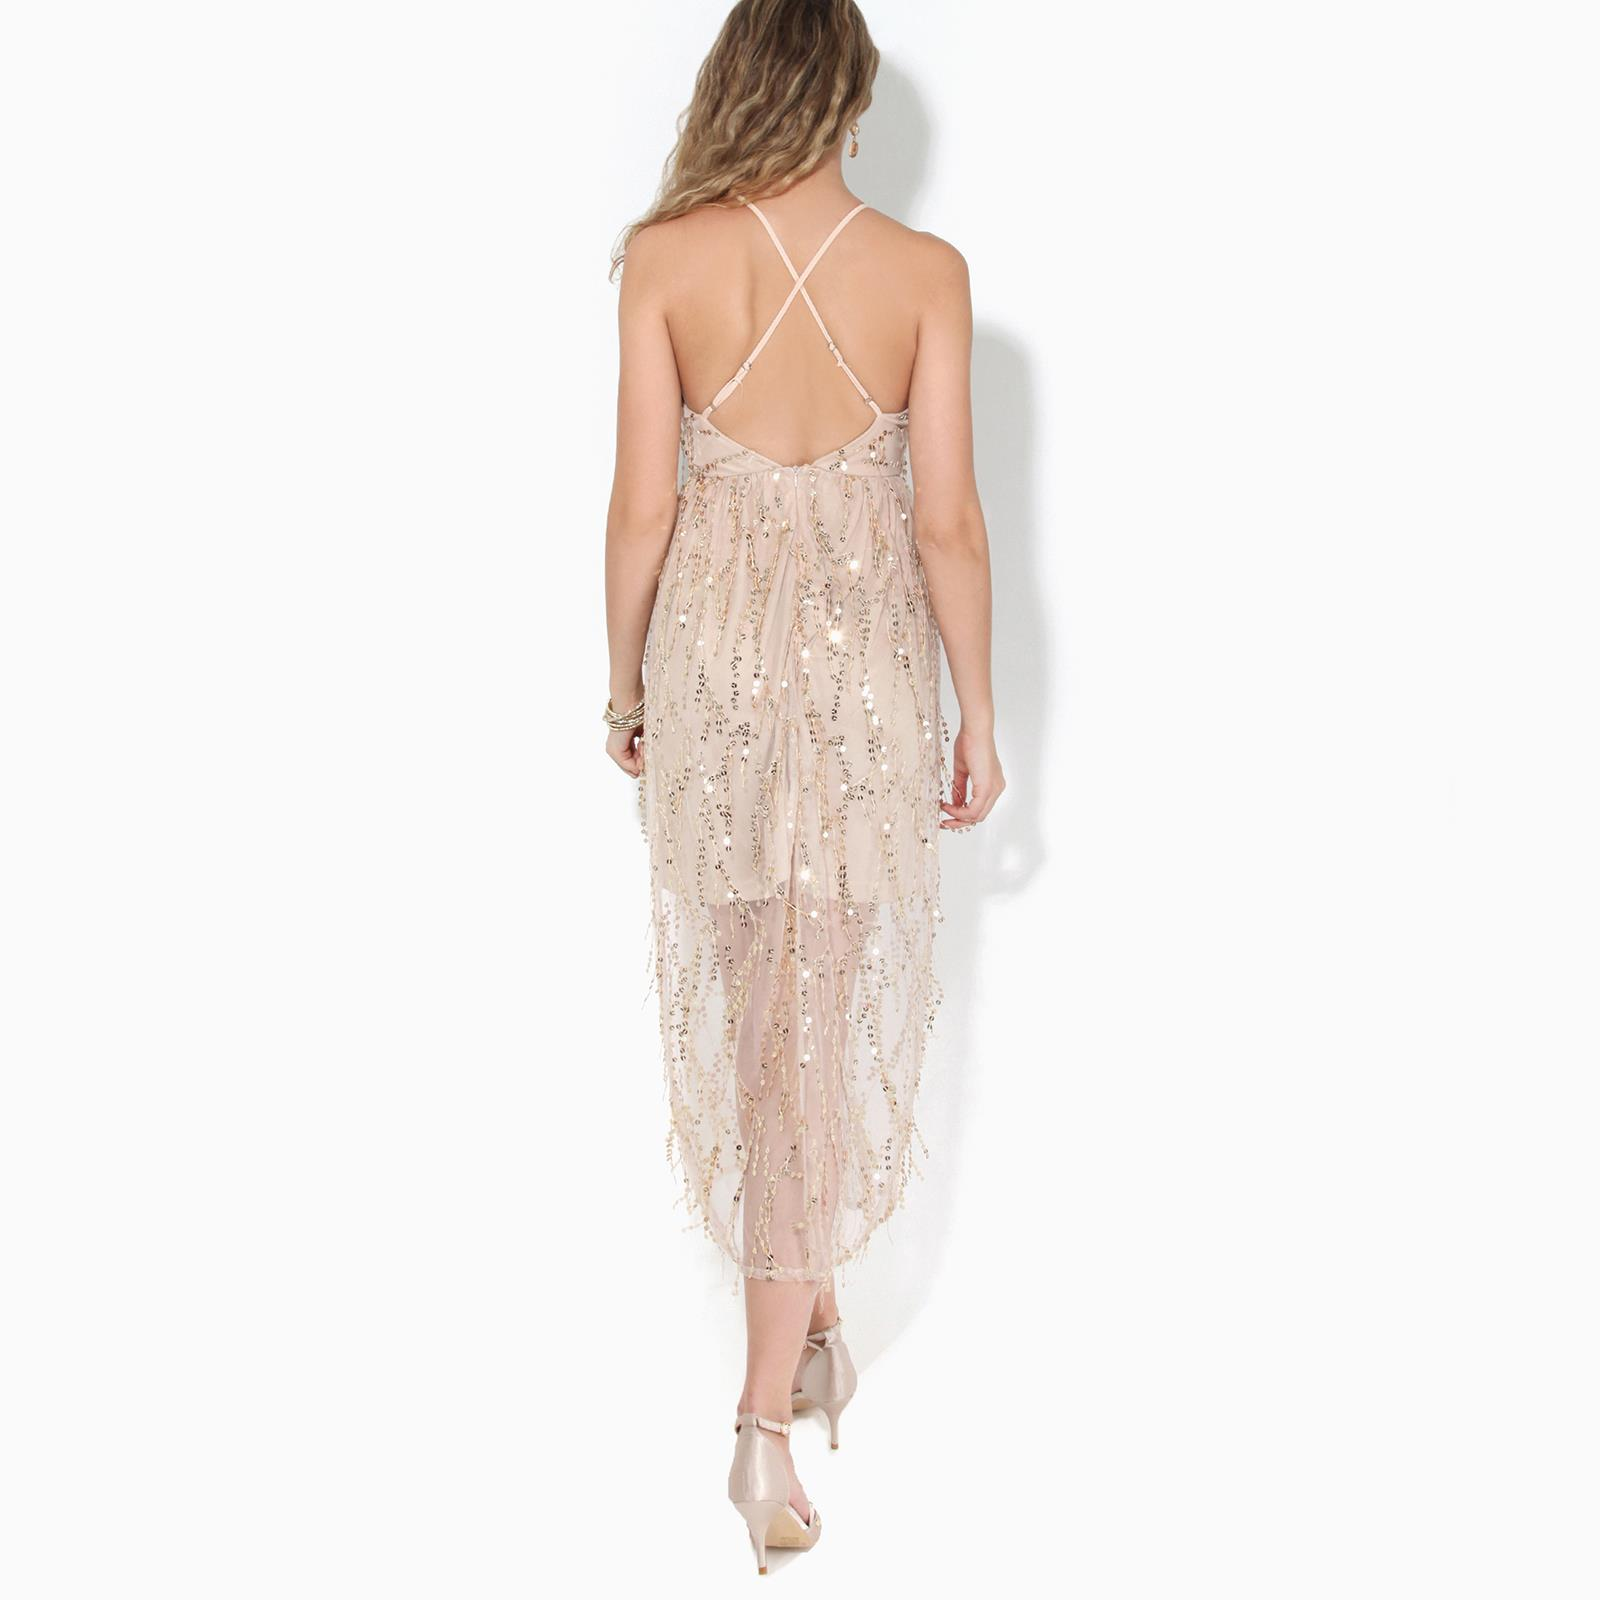 Womens-Ladies-Sequin-Dress-Midi-Party-Mesh-Fringe-Strappy-Evening-Backless thumbnail 4